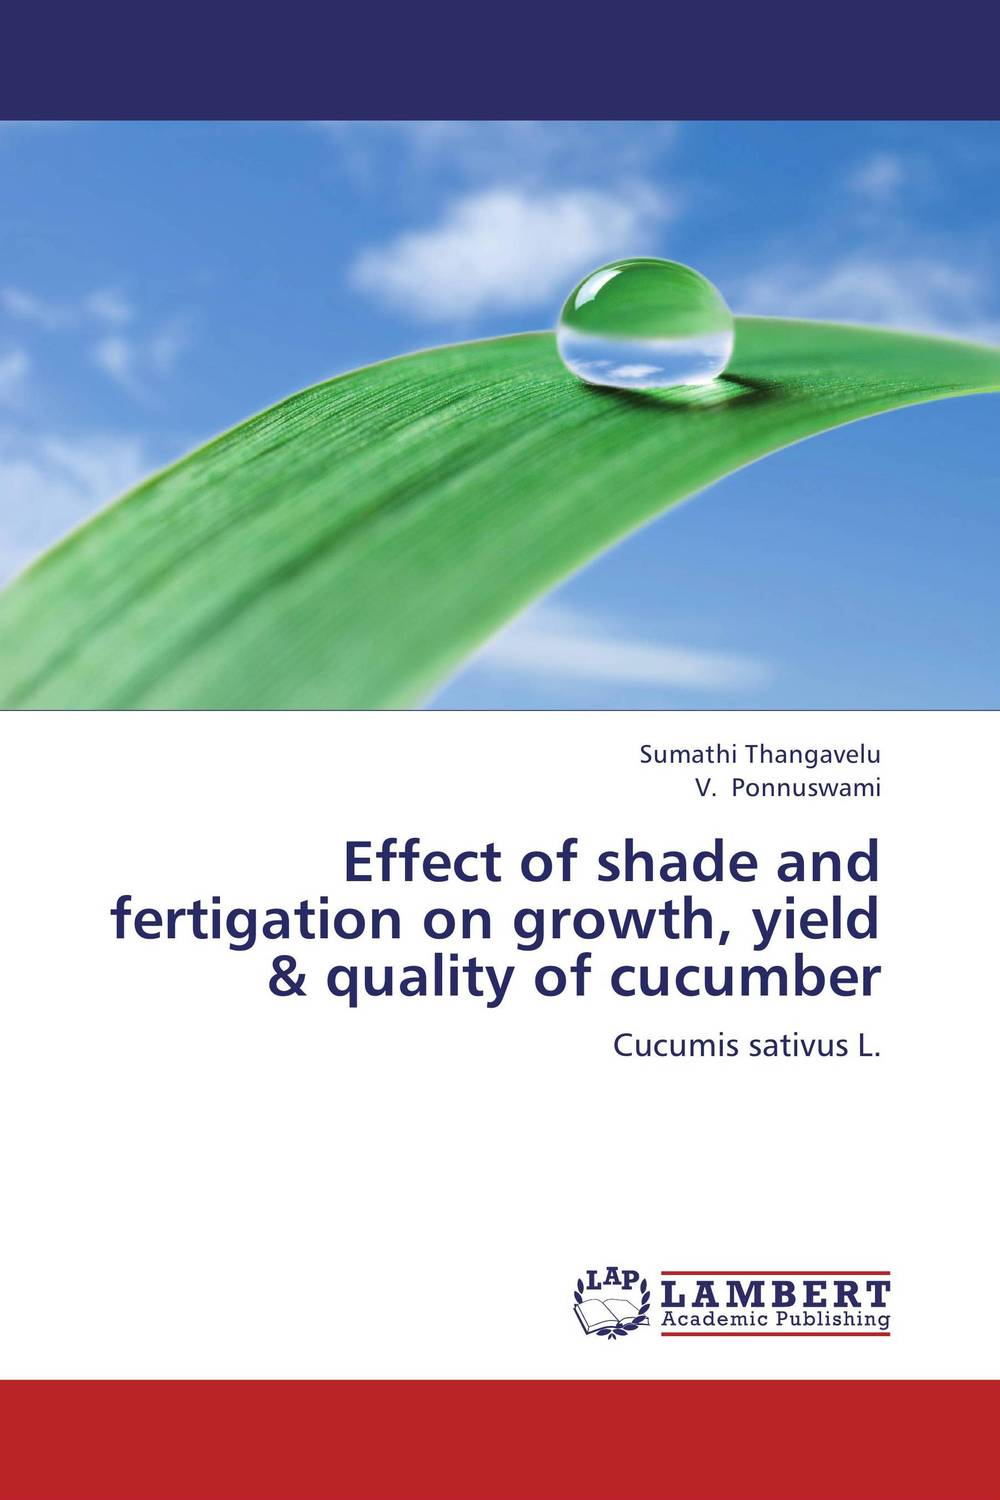 Effect of shade and fertigation on growth, yield & quality of cucumber usha rani m uma jyothi k and syam sundar reddy p study on effect of growth regulators and micronutrients on okra growth and yield of okra